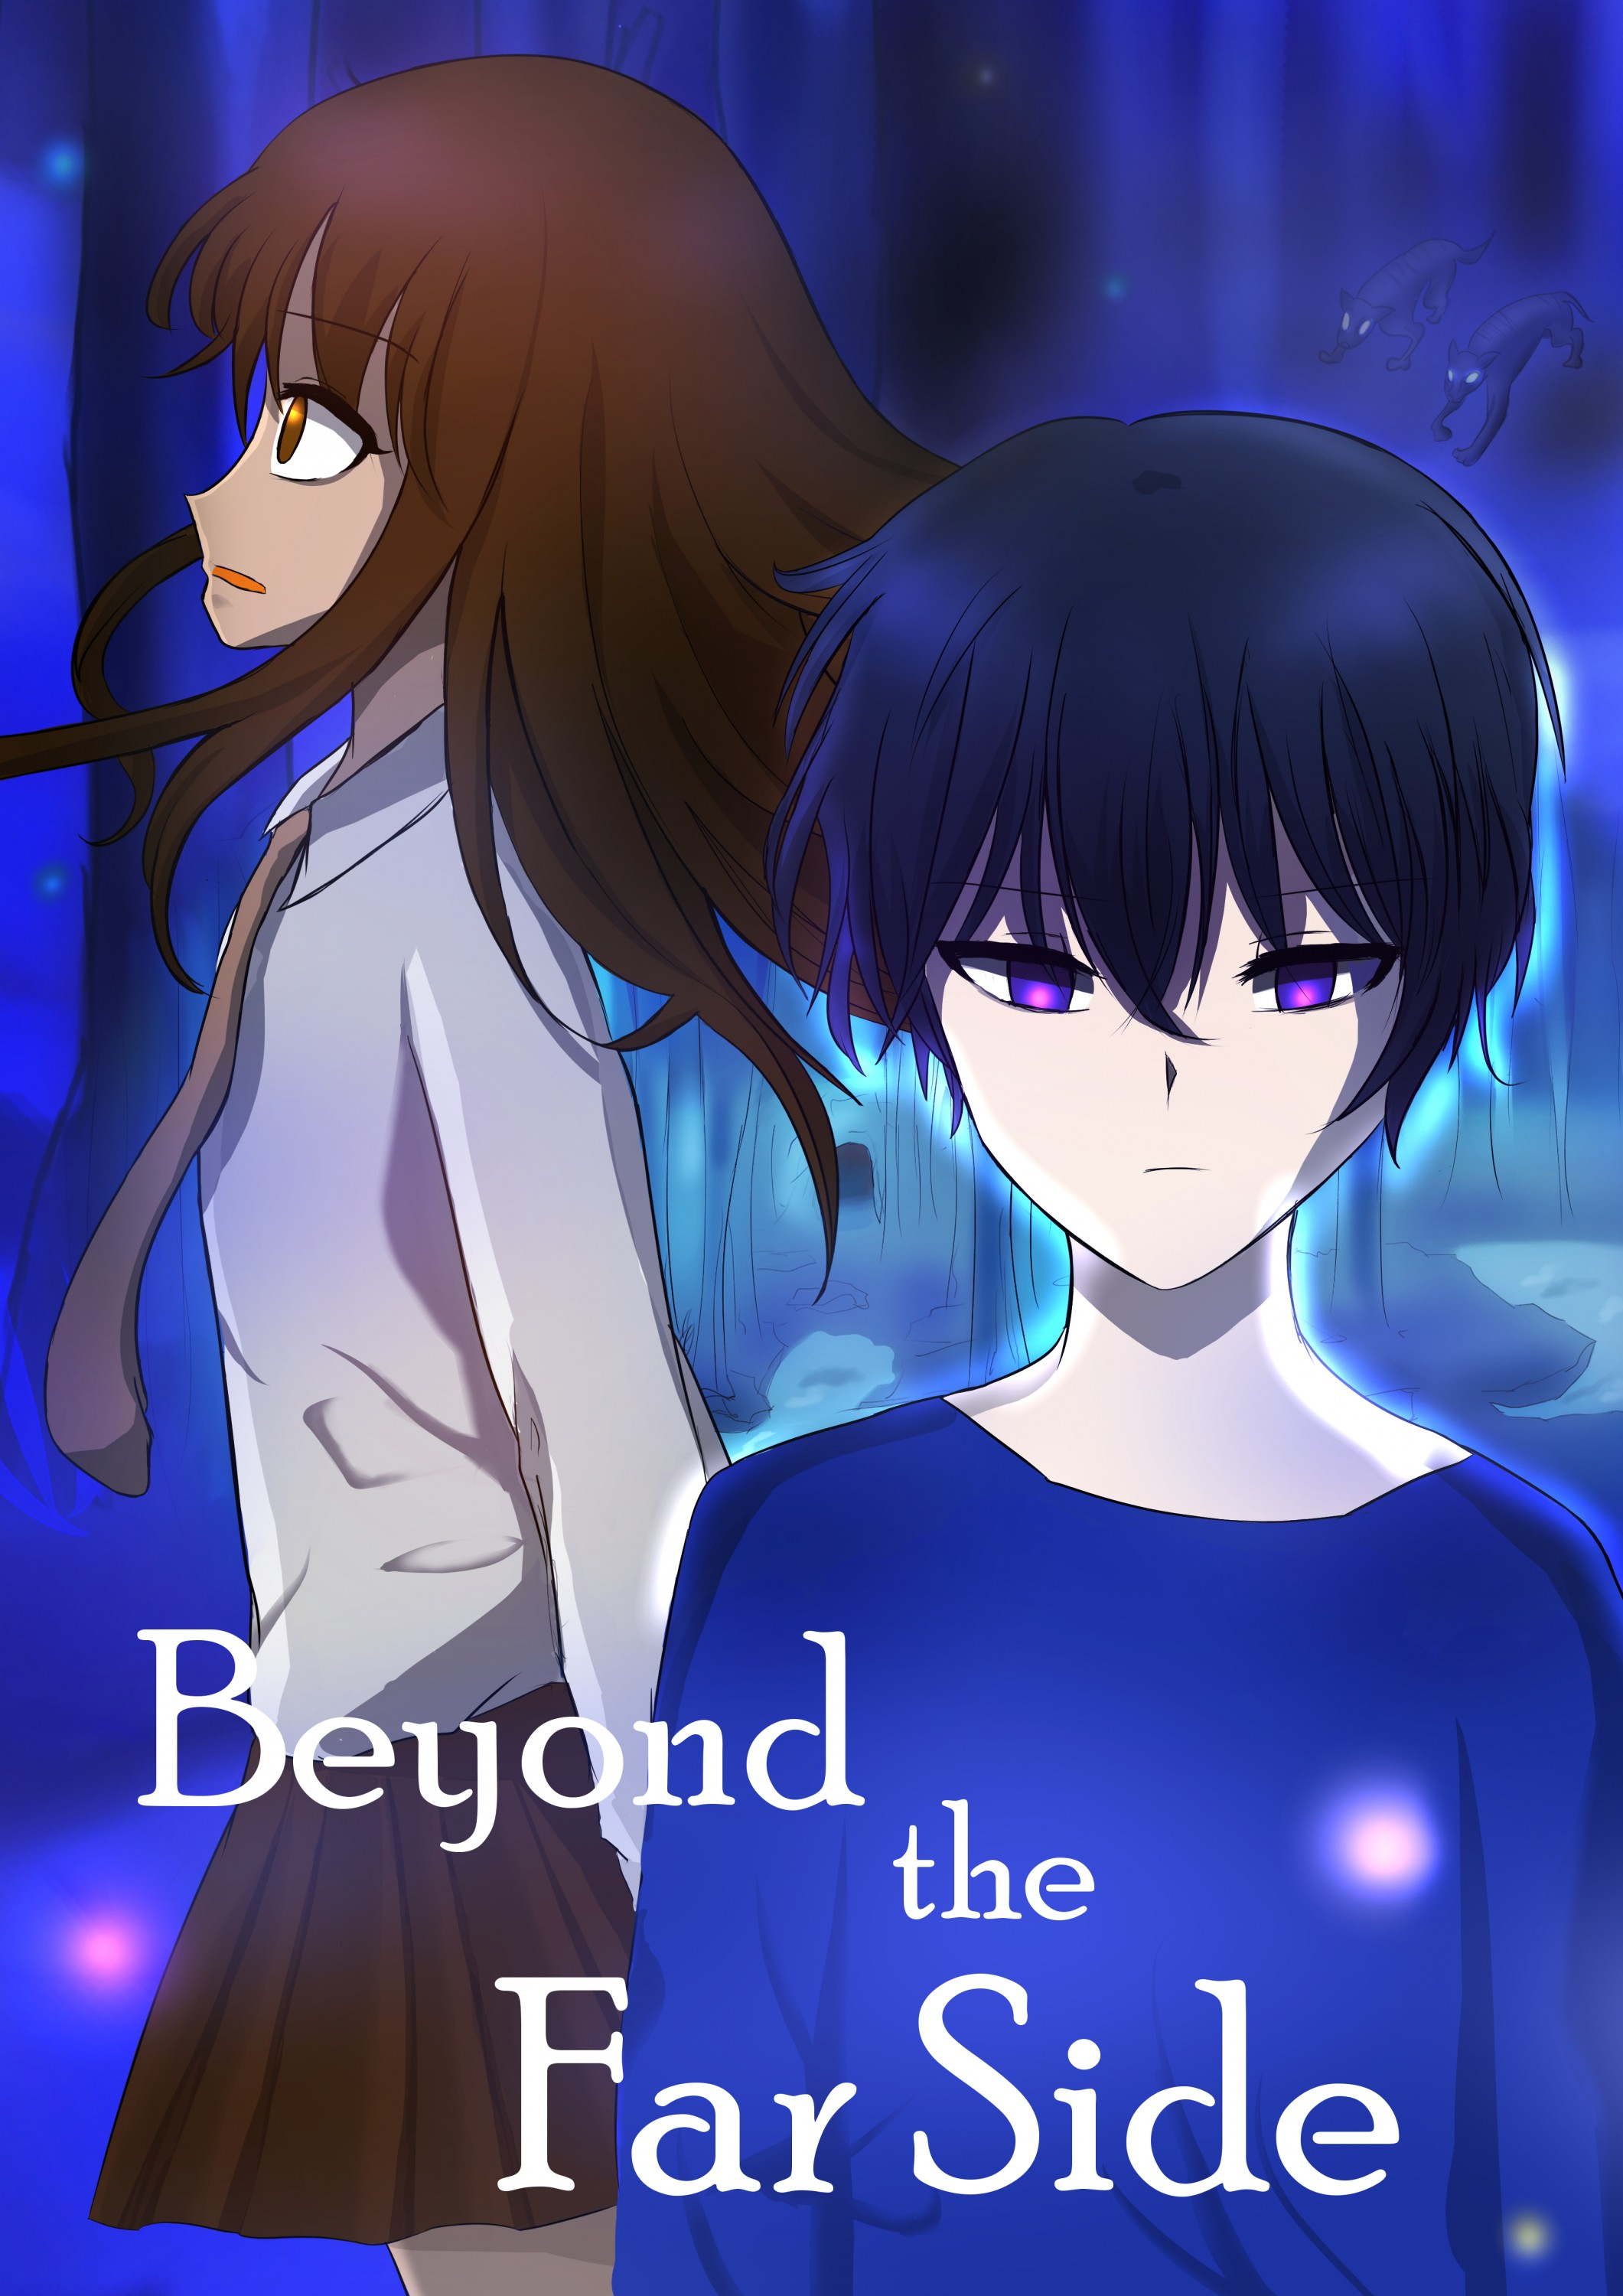 It is the poster for animated film, Beyond the Far Side. There are two main characters in dark blue mystic forest.